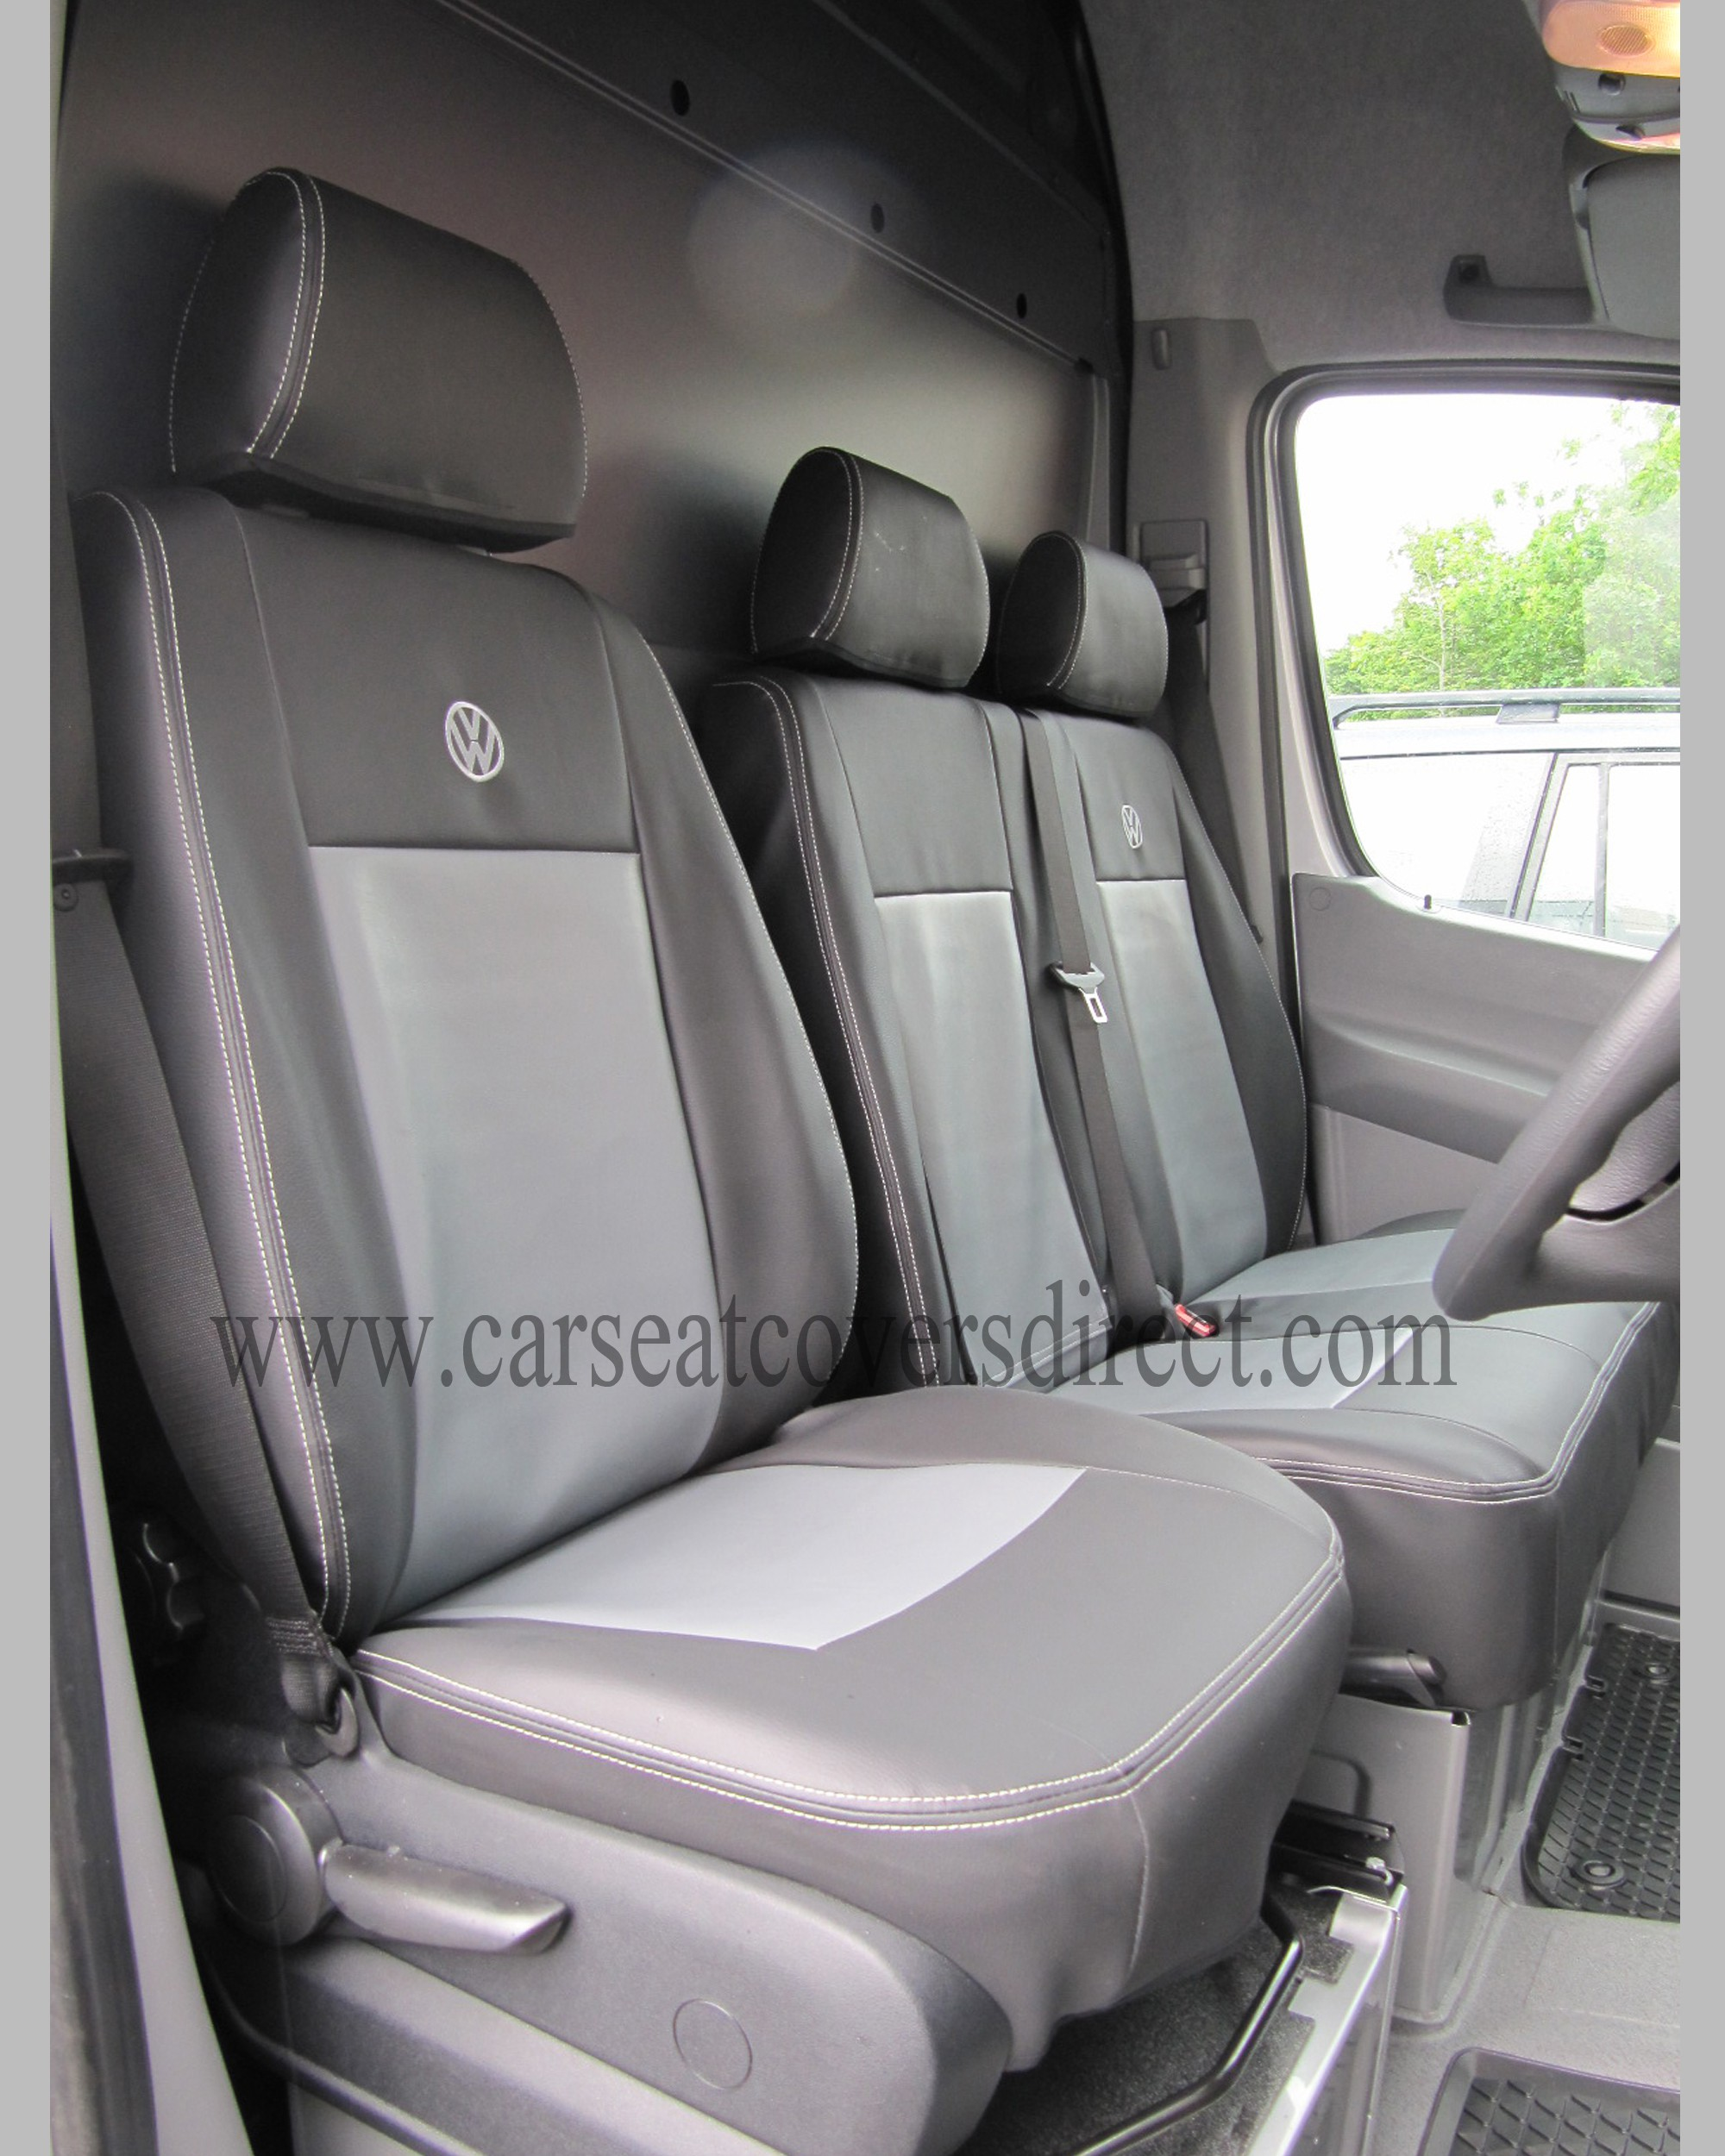 volkswagen vw crafter black grey seat covers car seat covers direct tailored to your choice. Black Bedroom Furniture Sets. Home Design Ideas